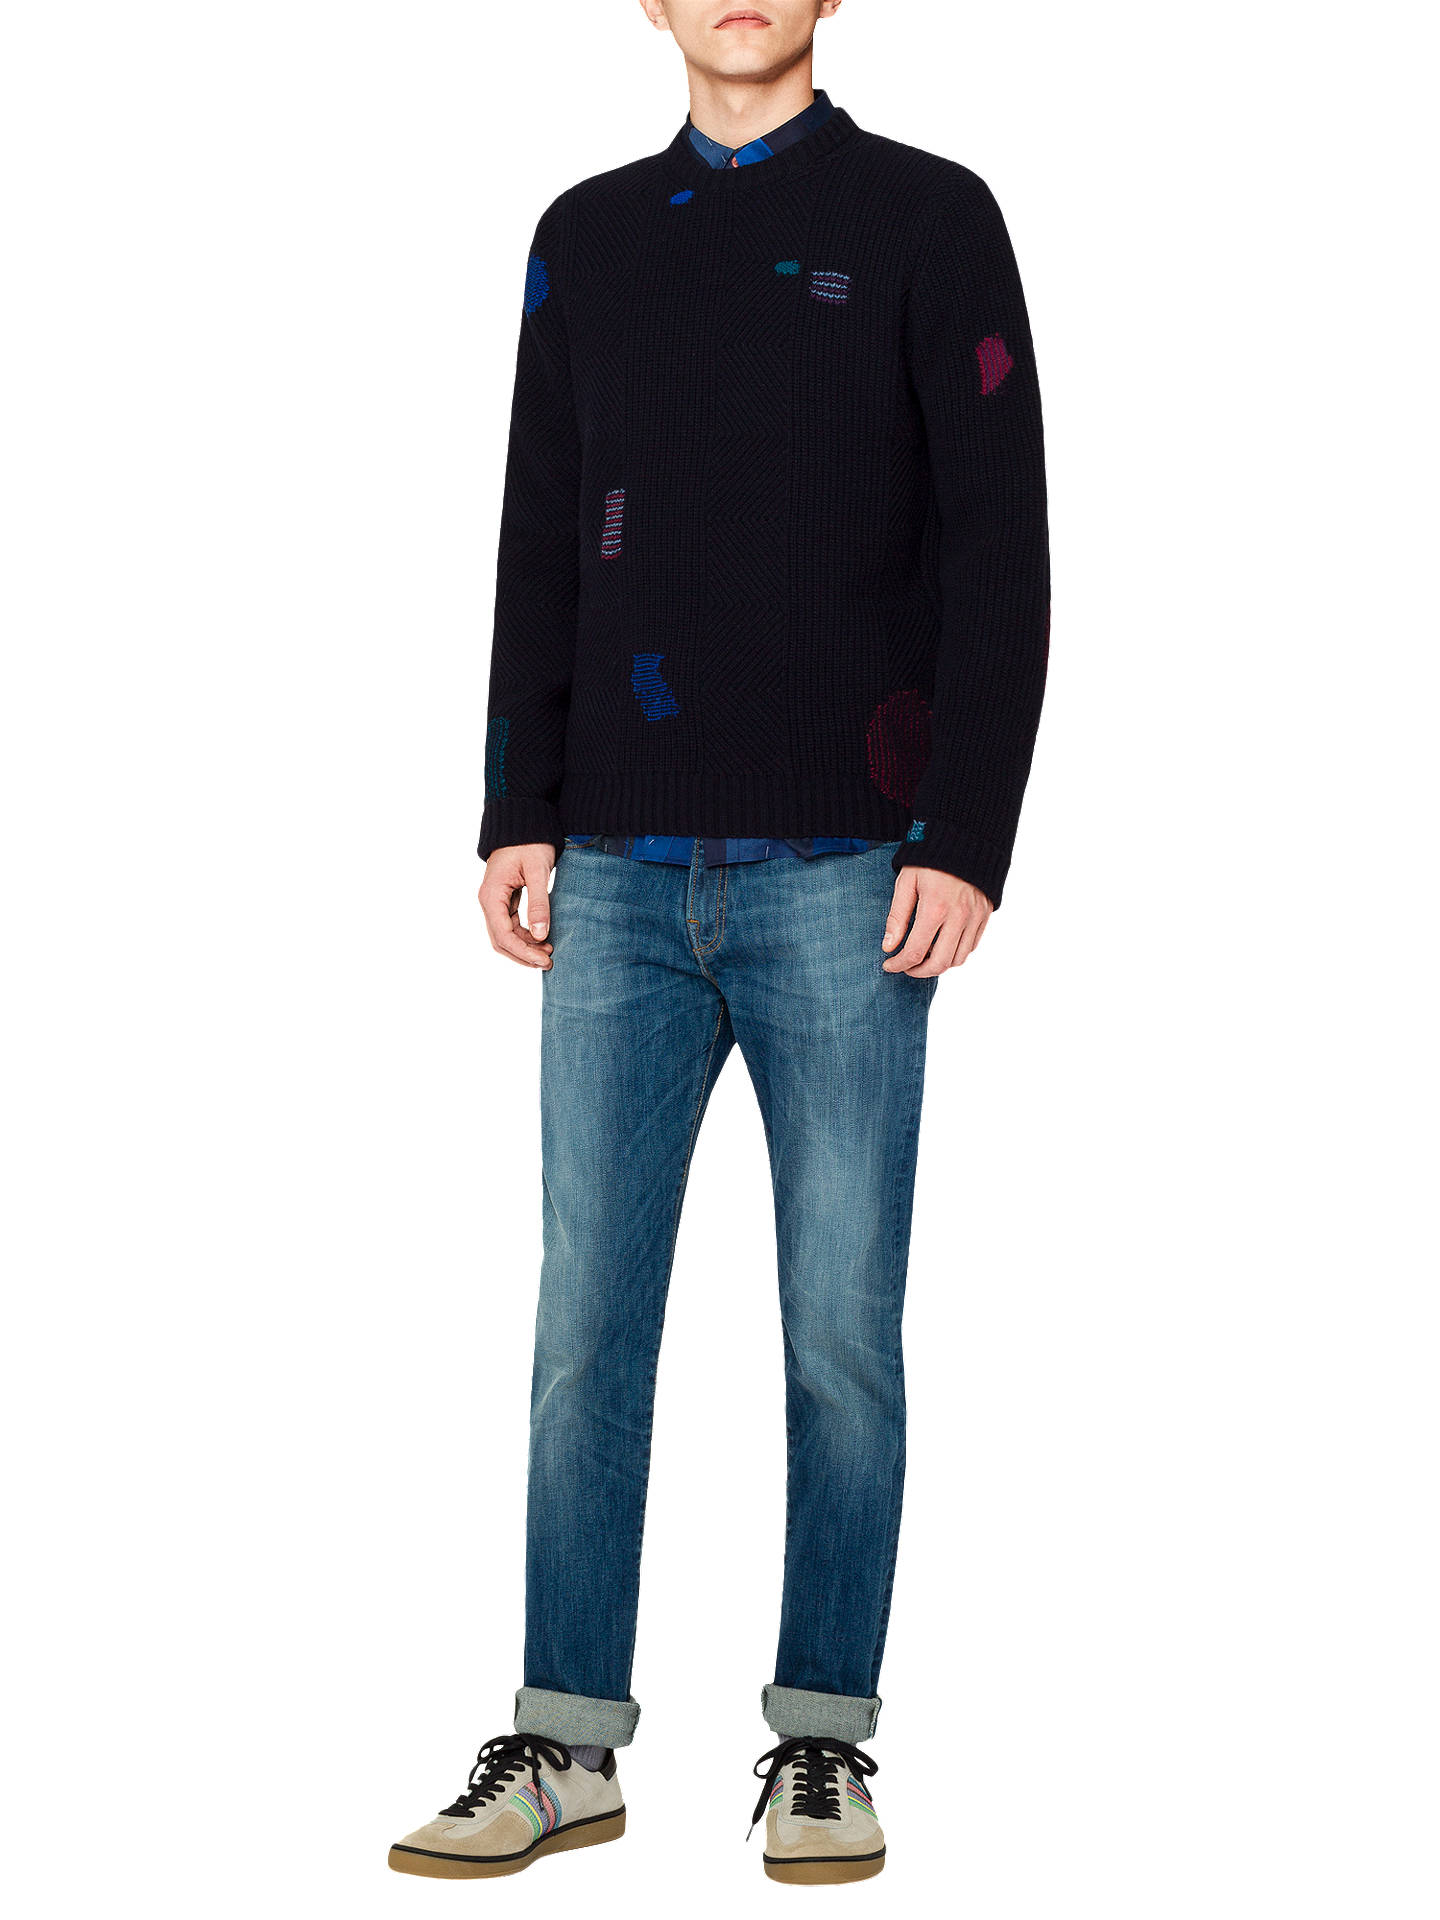 Buy PS Paul Smith Repair Rib Pullover Jumper, Navy, M Online at johnlewis.com